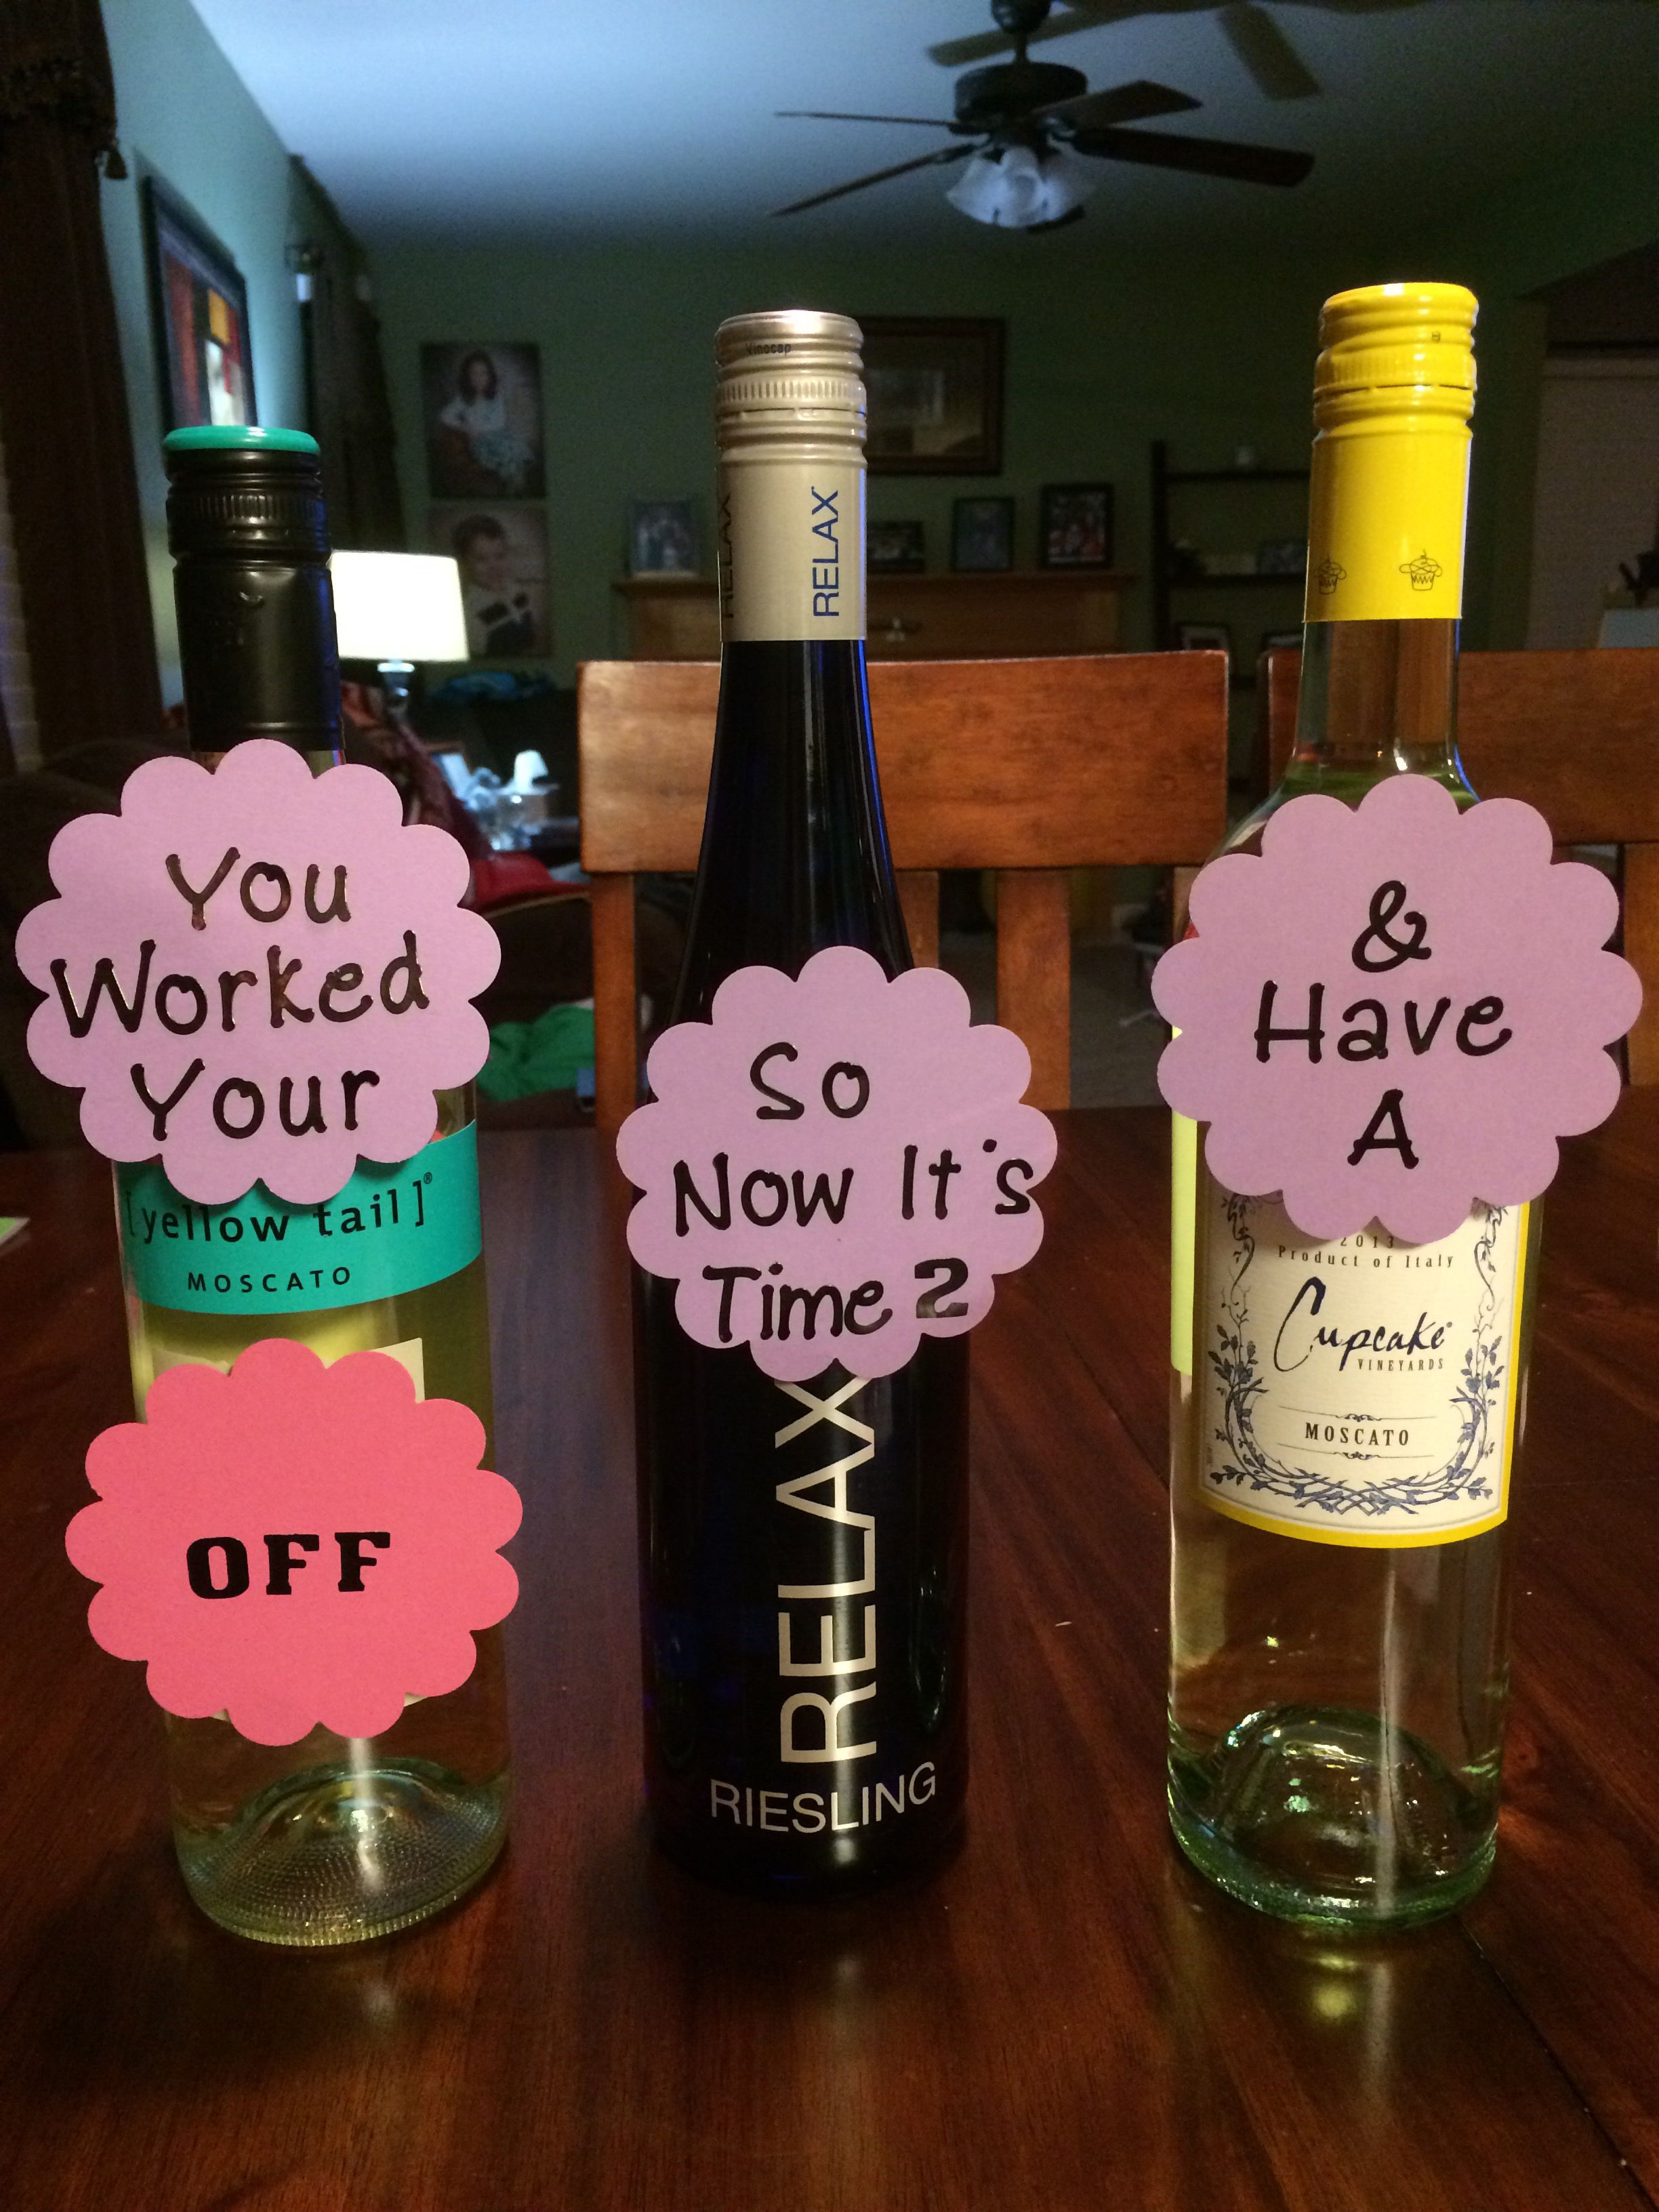 College Graduation Gift Ideas For Friends  College Graduation Gift Super Simple and who doesnt love